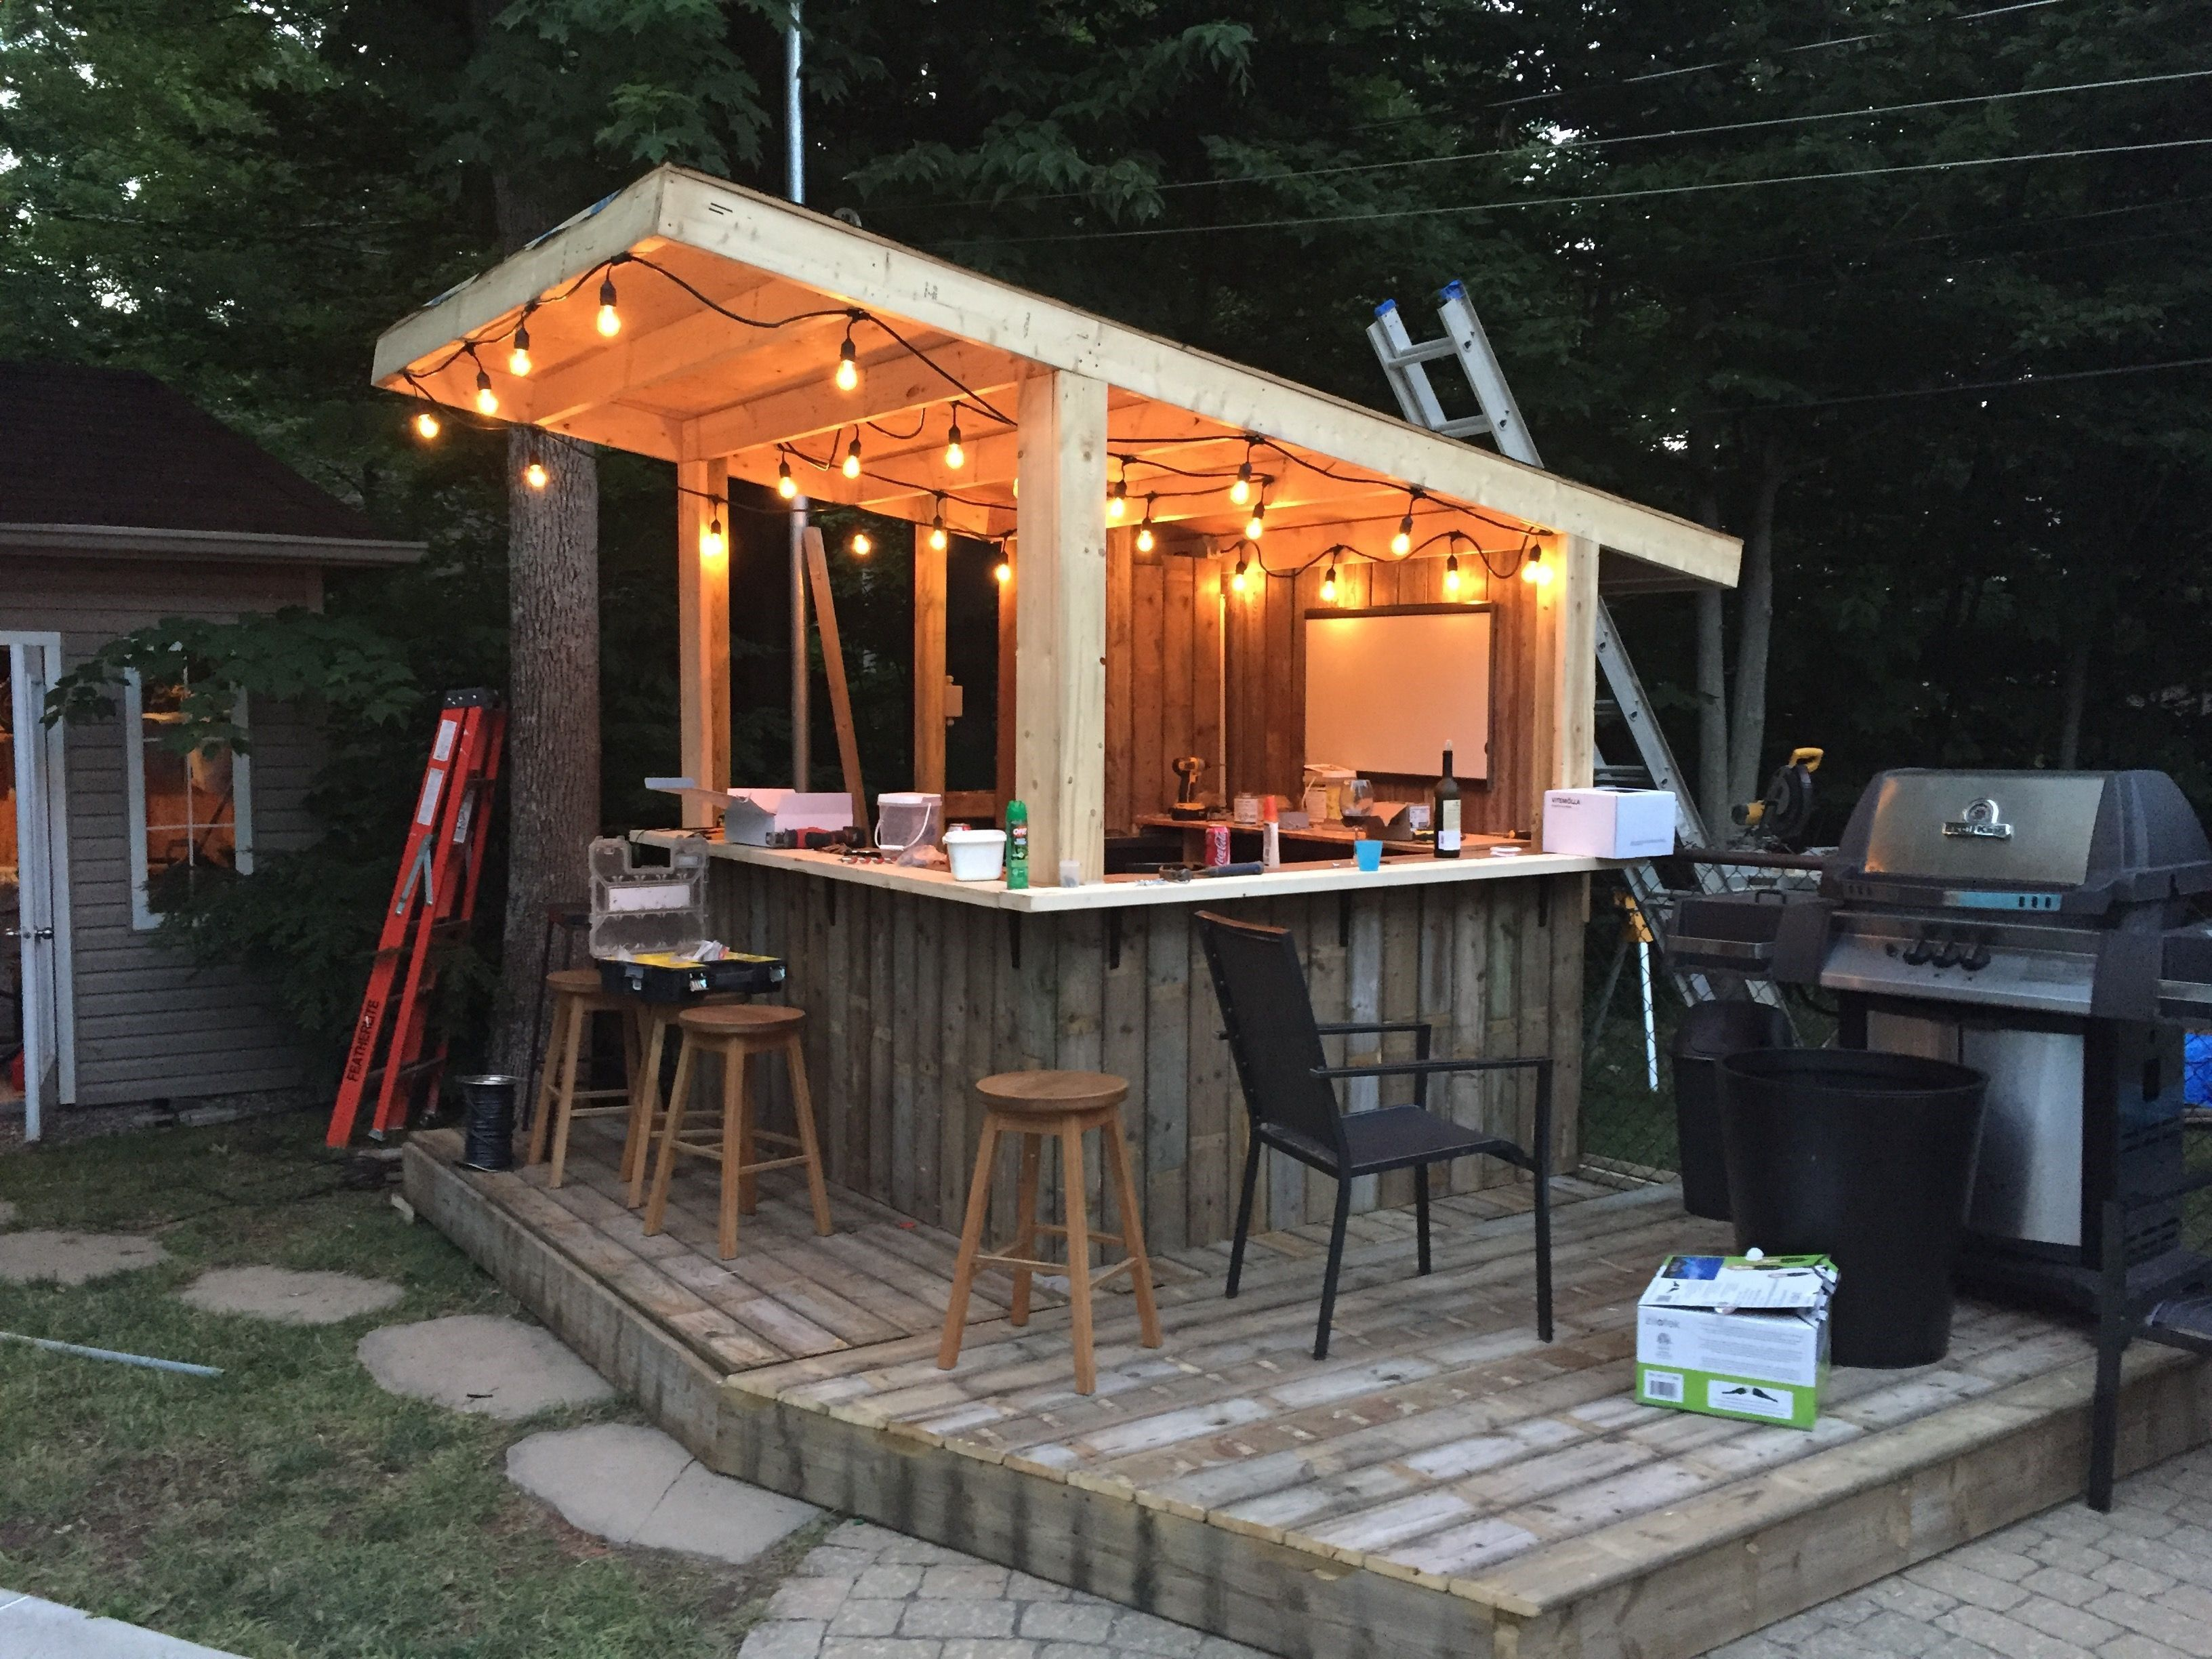 Shed Plans Tiki Bar Backyard Pool Bar Built With Old Patio Wood Now You Can Build Any Shed In A Week Outdoor Patio Bar Tiki Bars Backyard Diy Outdoor Bar Diy backyard swim up bar